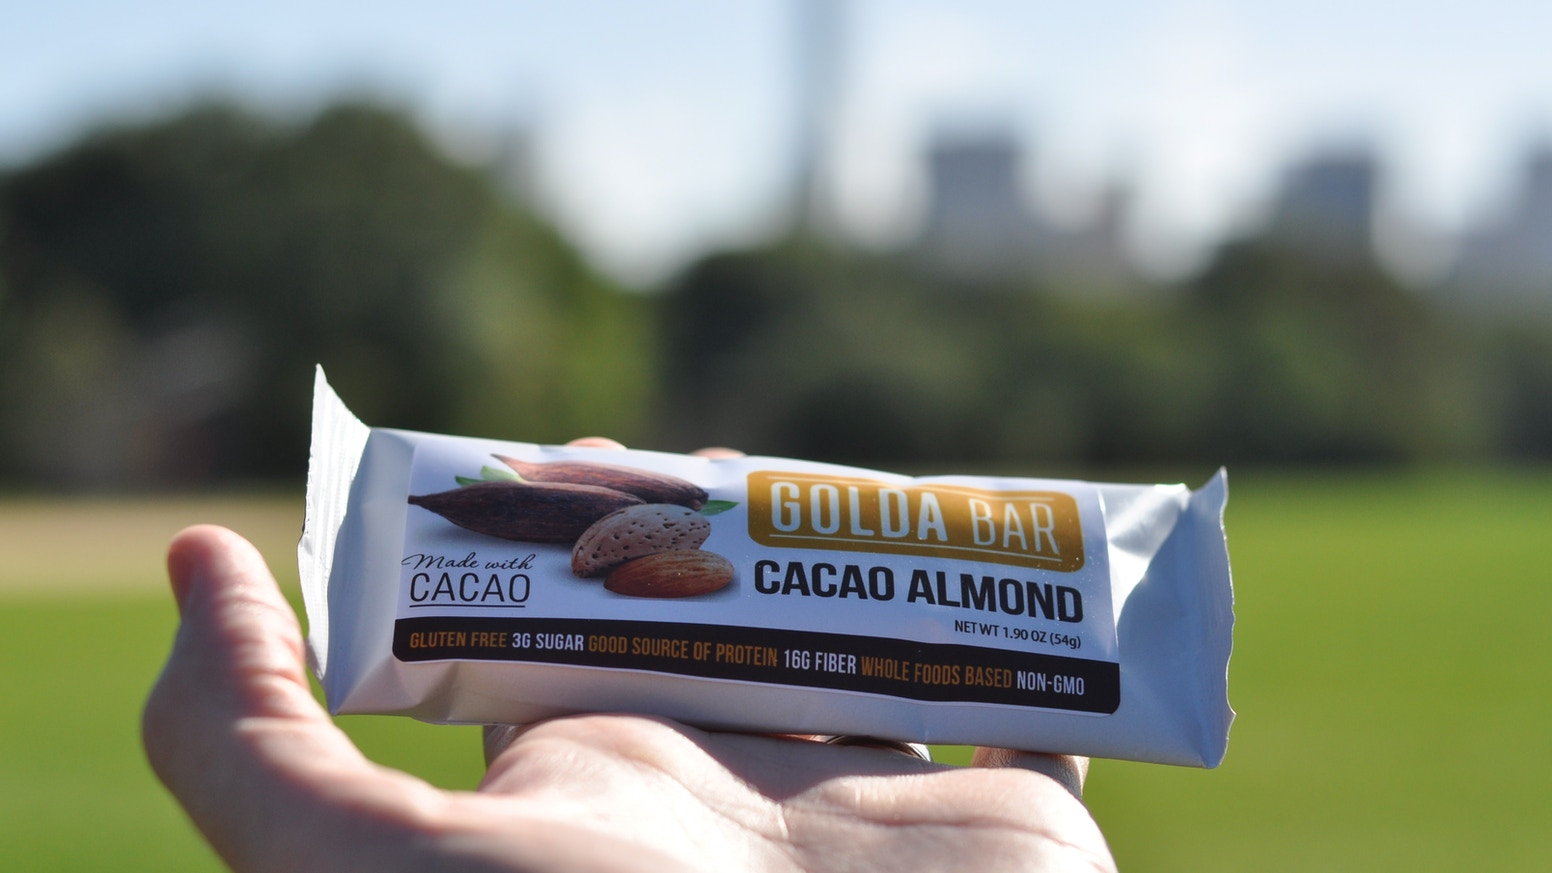 The bar with grass-fed whey, organic raw cacao, & organic coconut oil. Non-GMO. Gluten free. No fake sweeteners, sugar alcohols or added sugar.